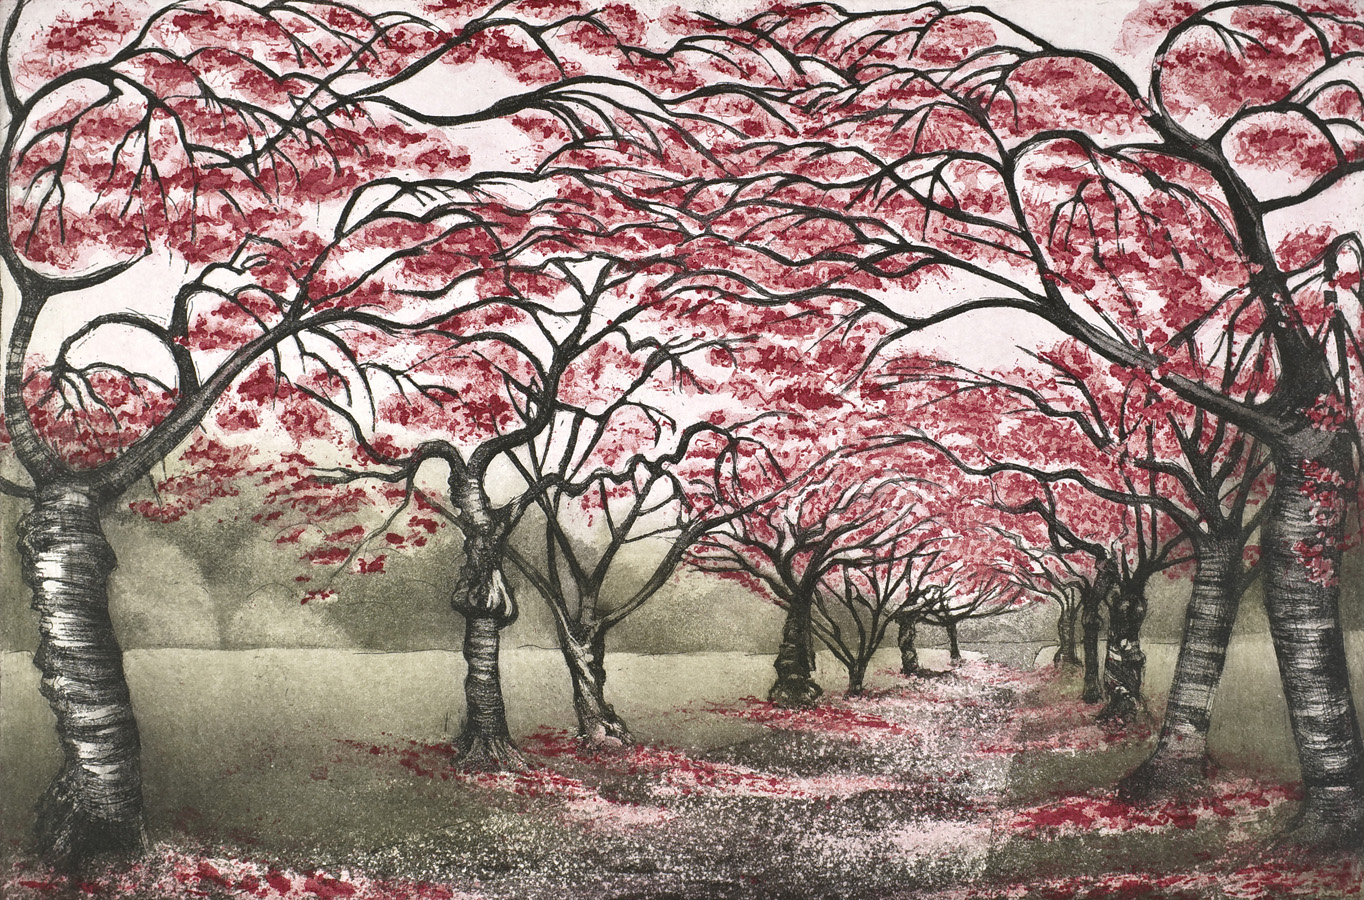 'Cherry Blossom Walk' by Morna Rhys